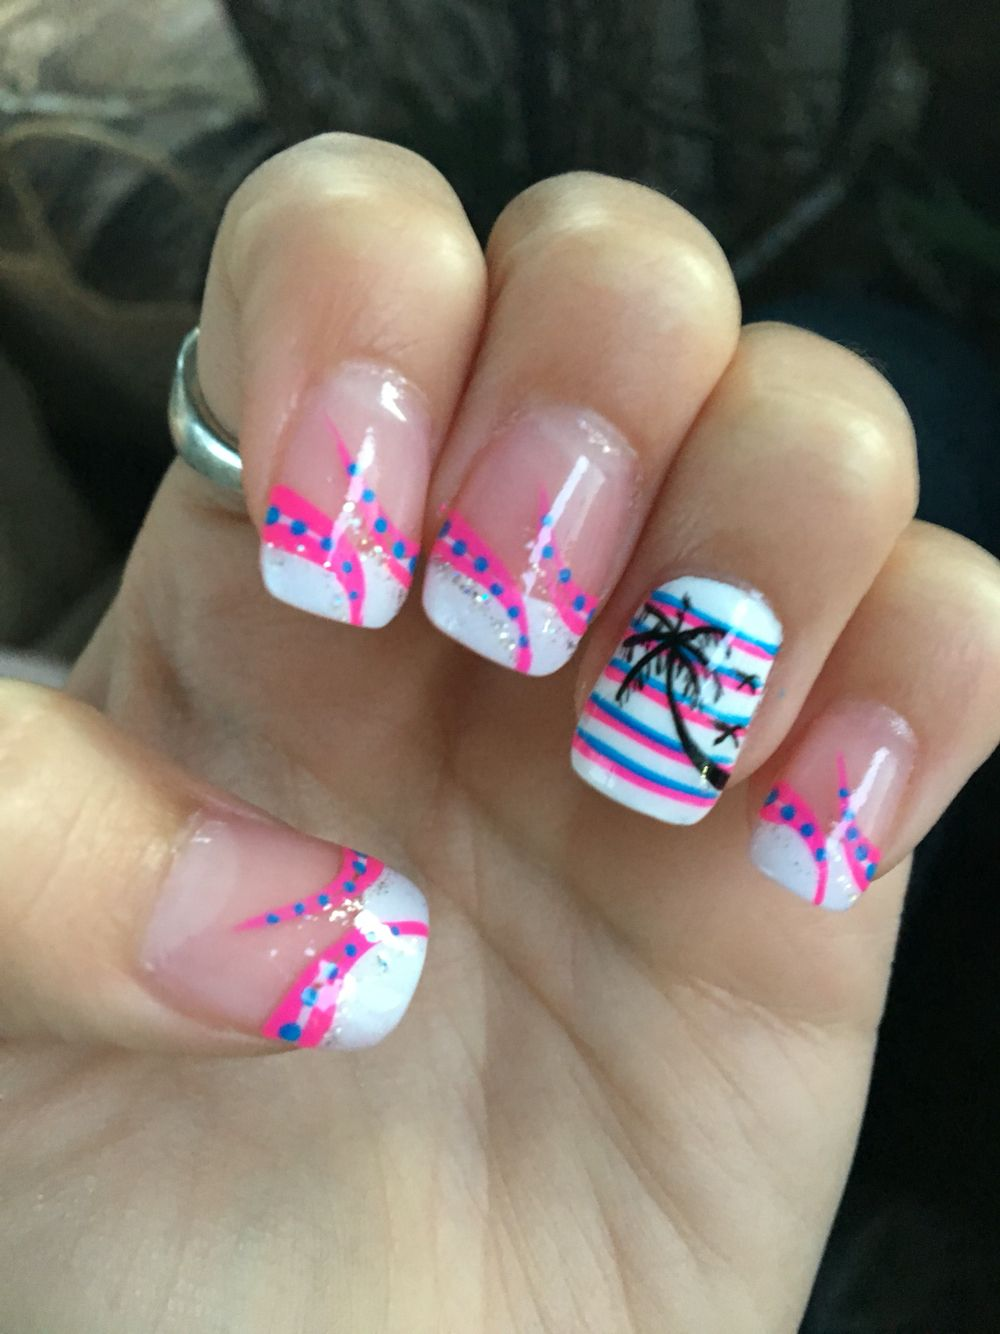 Colored french nail design - Summer Nail Designs Pink And Blue Strips Palm Tree French Manicure